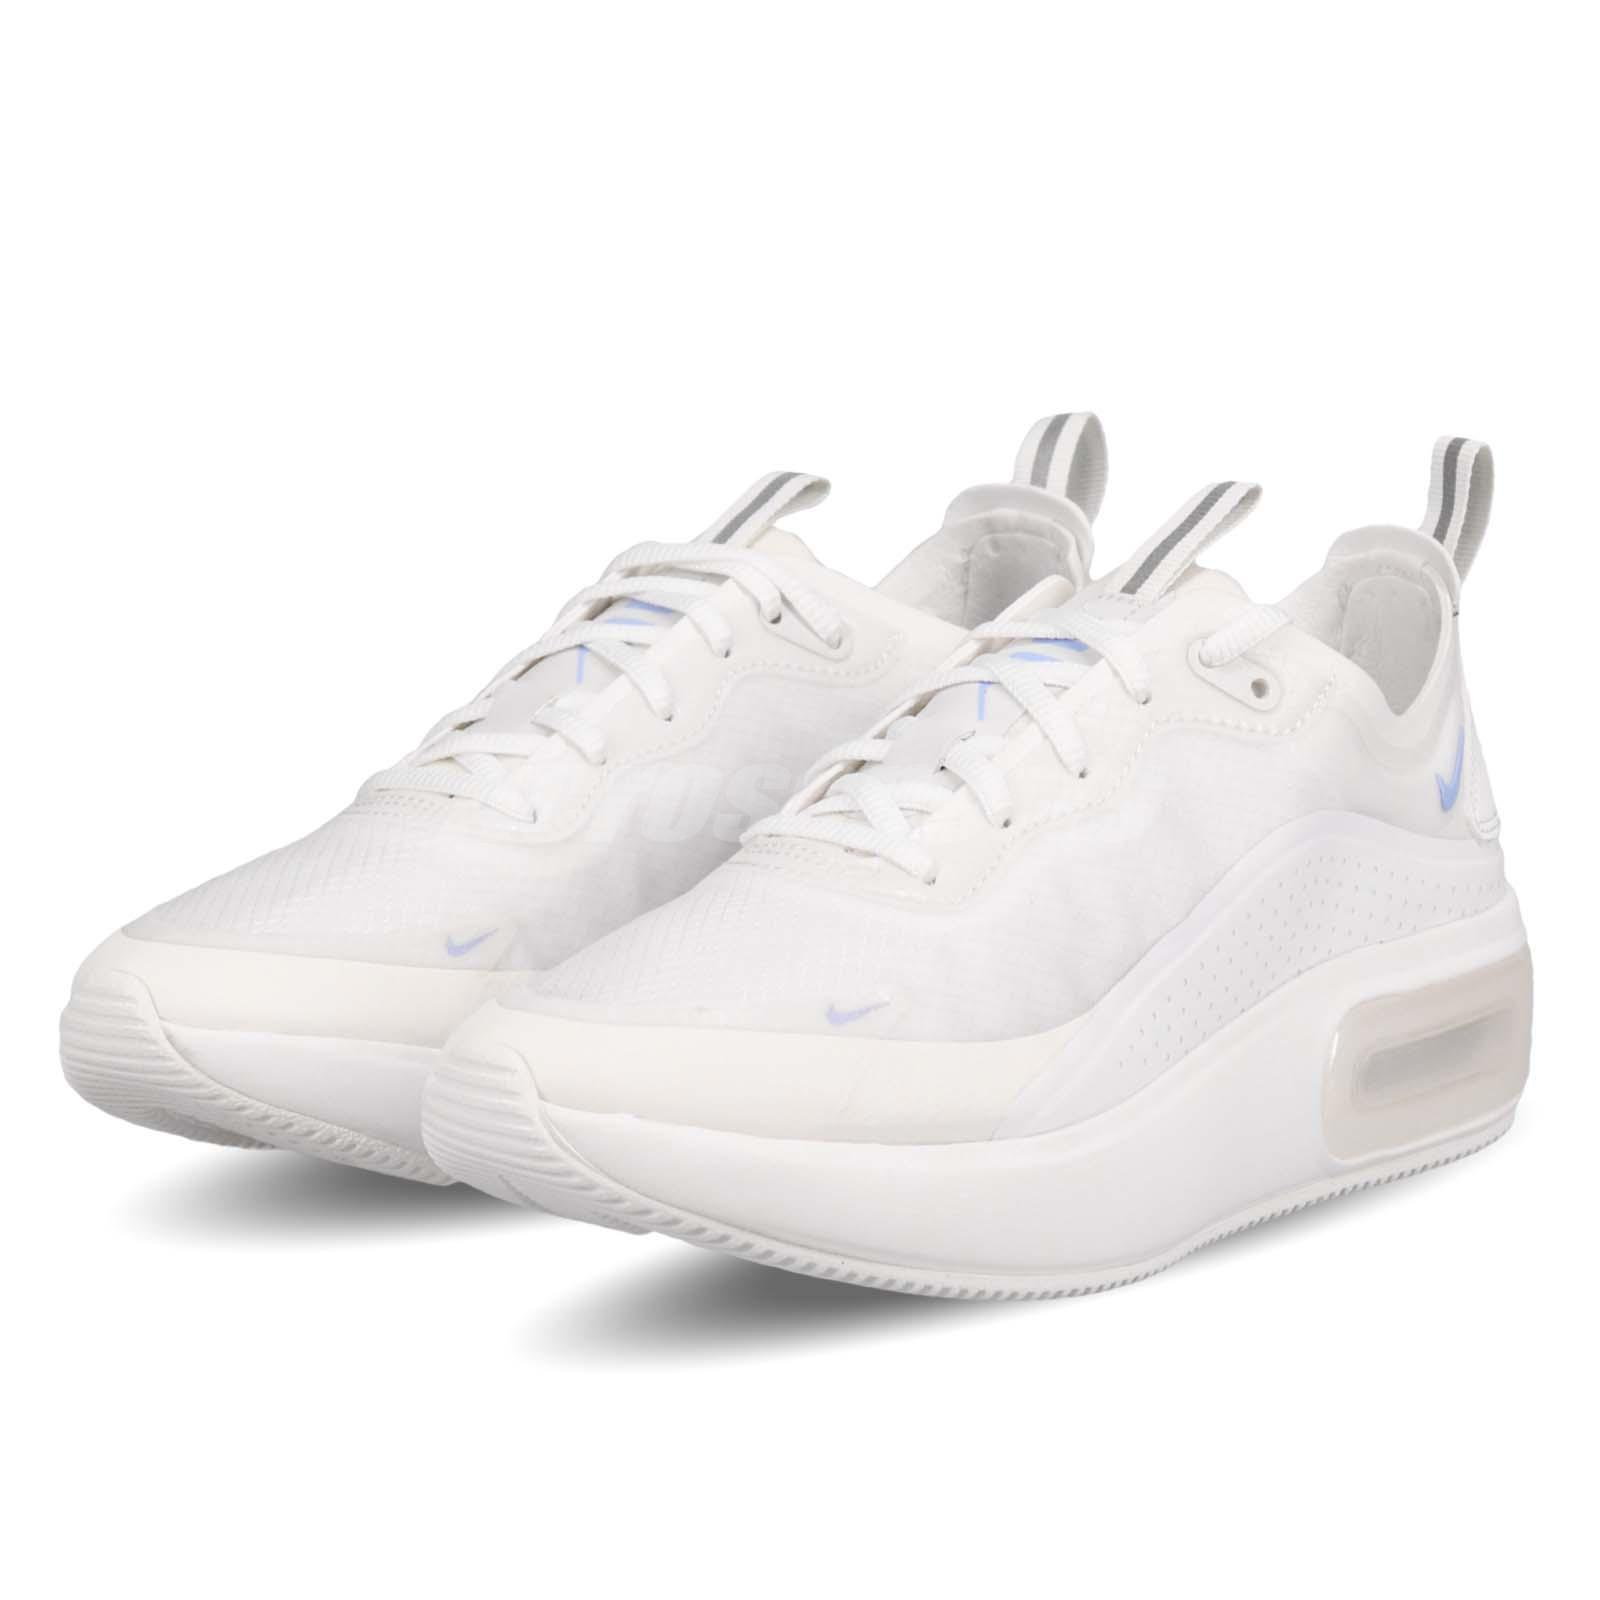 Details about Nike Wmns Air Max Dia SE Summit White Women Running Shoes Sneakers AR7410 100